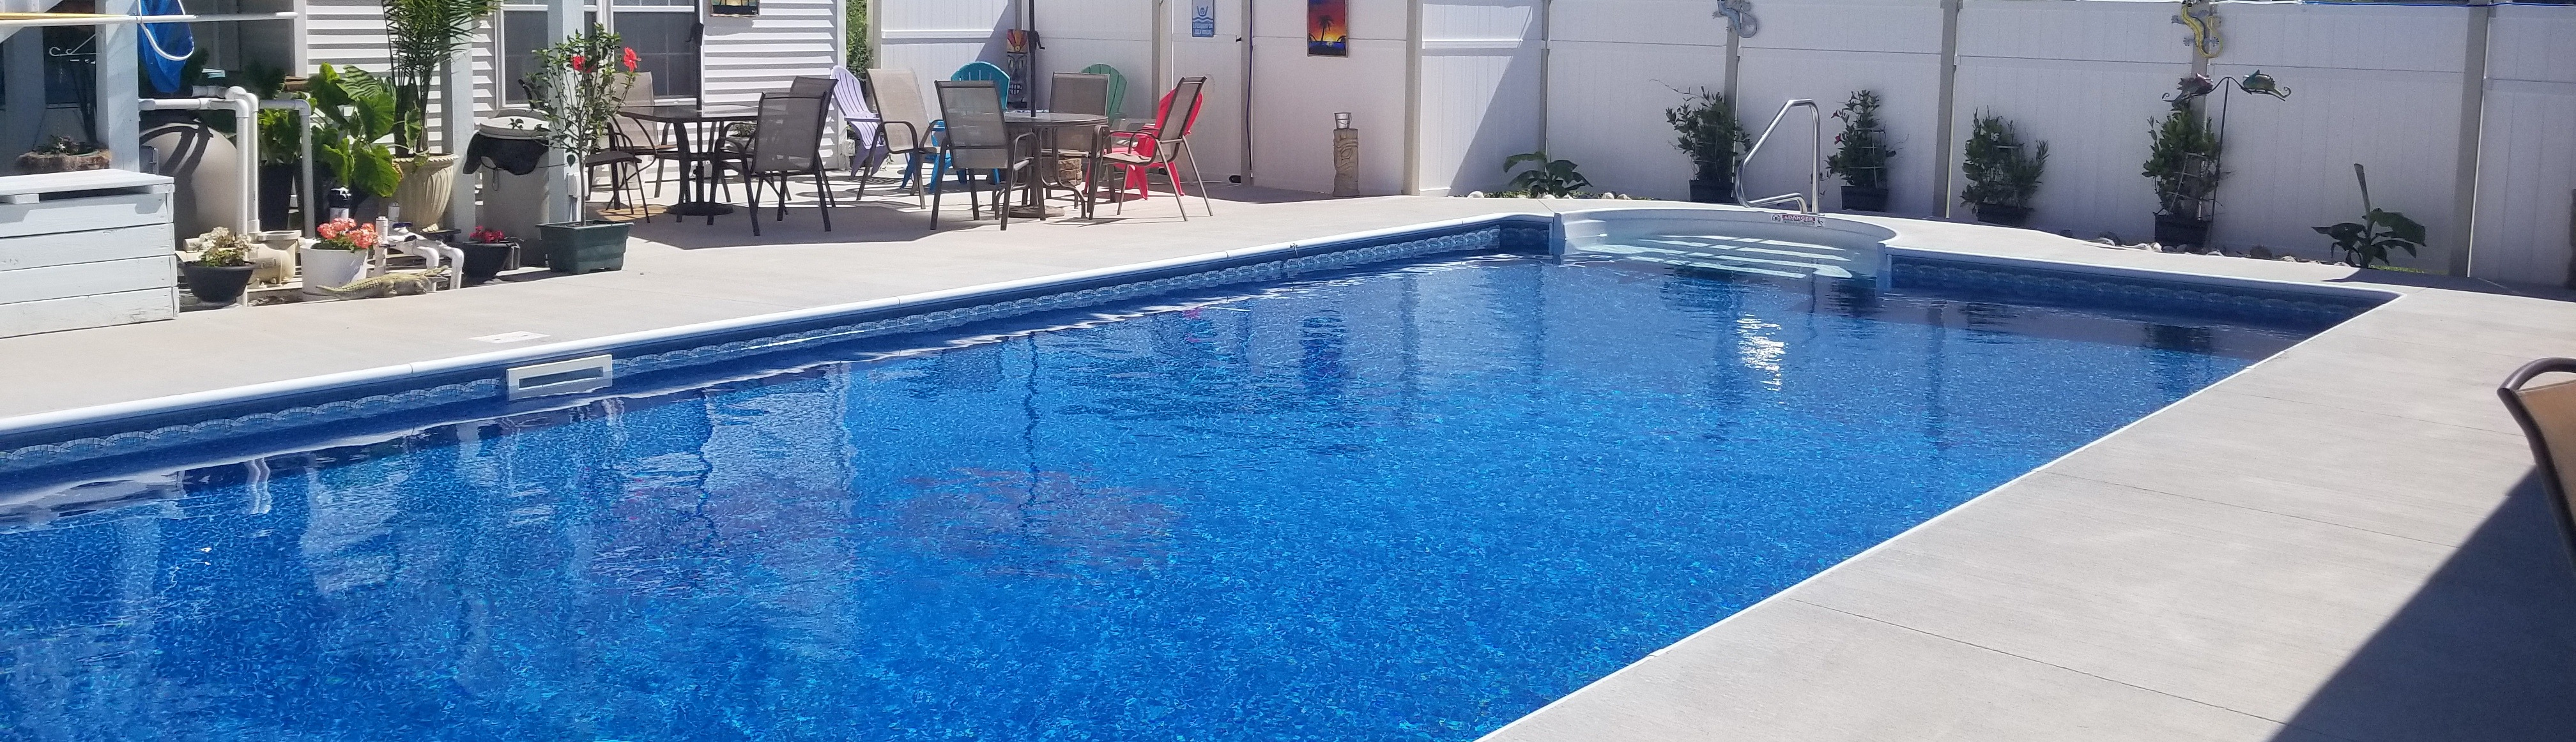 how can I help keep my swimming pool warmer